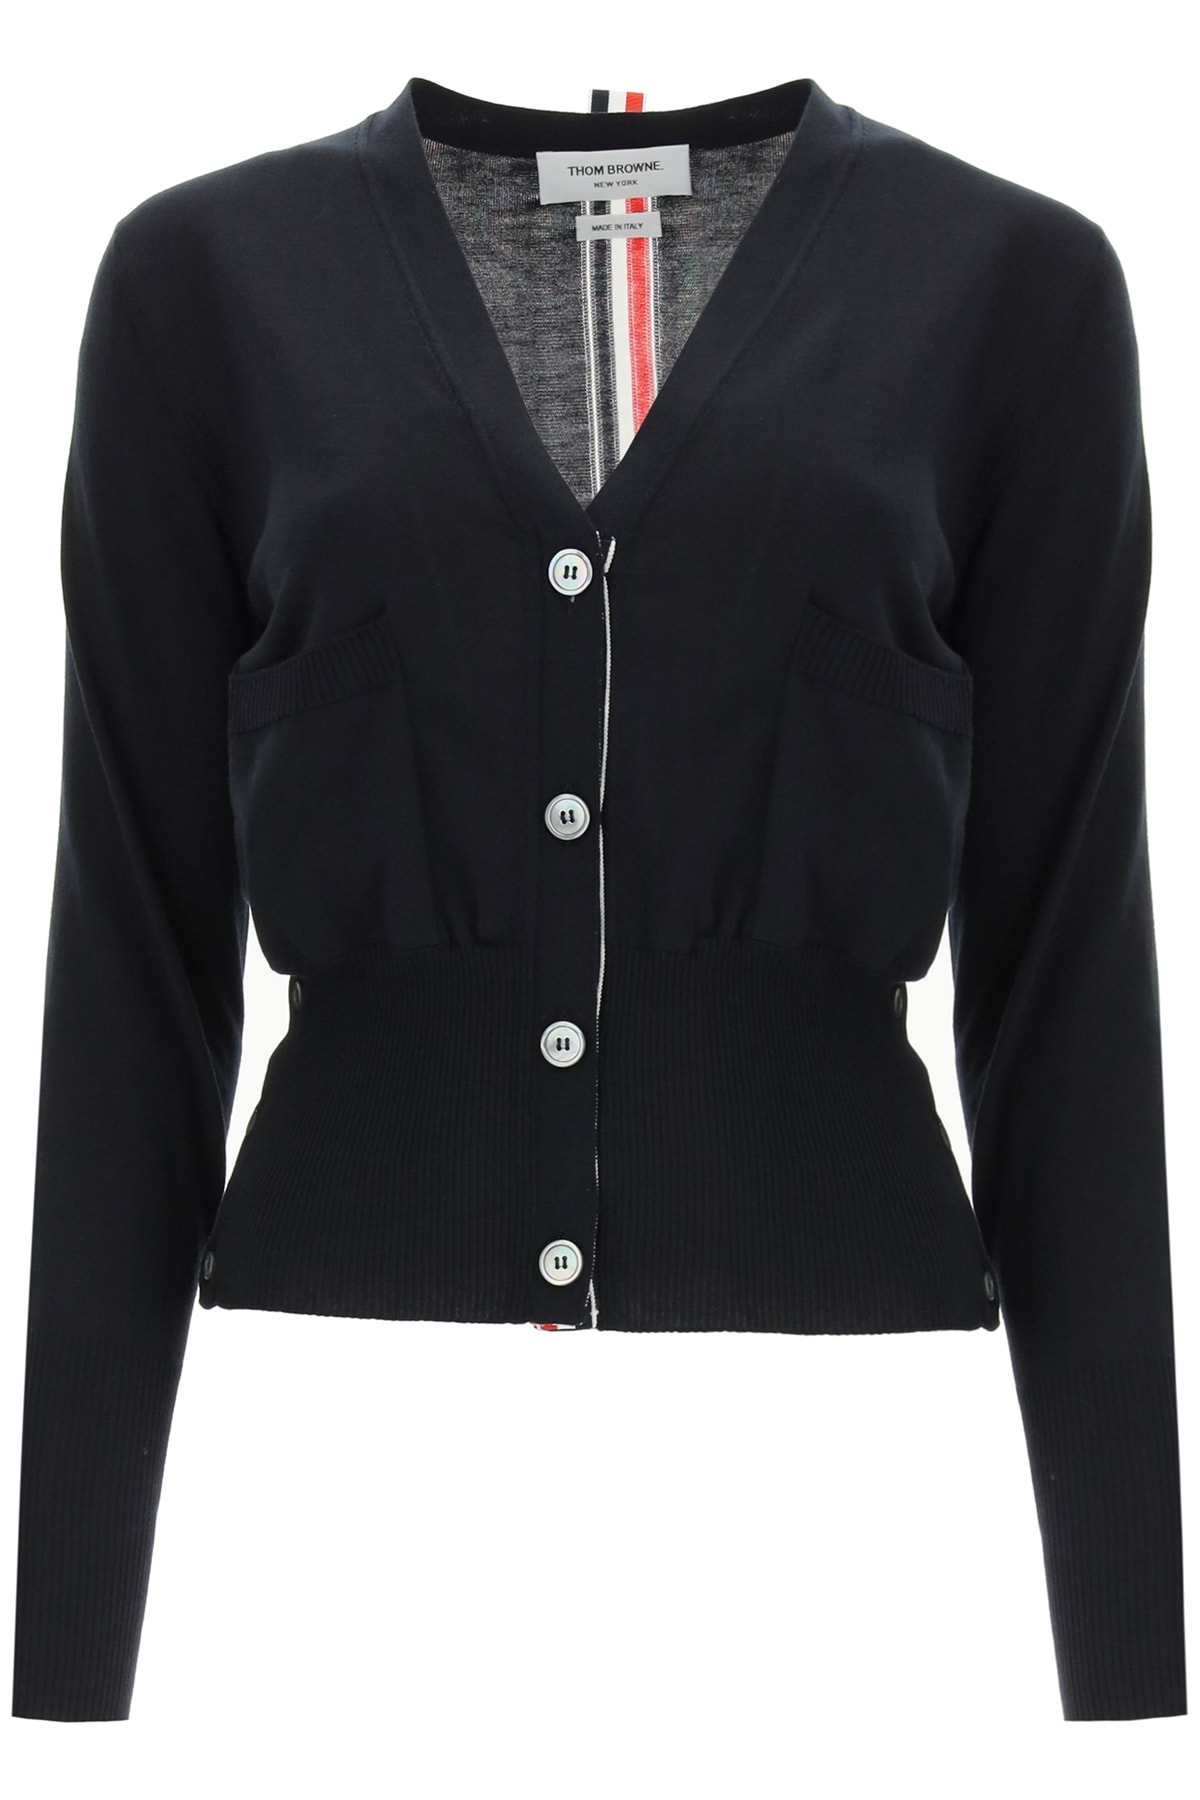 Thom Browne Clothing SILK AND COTTON CARDIGAN